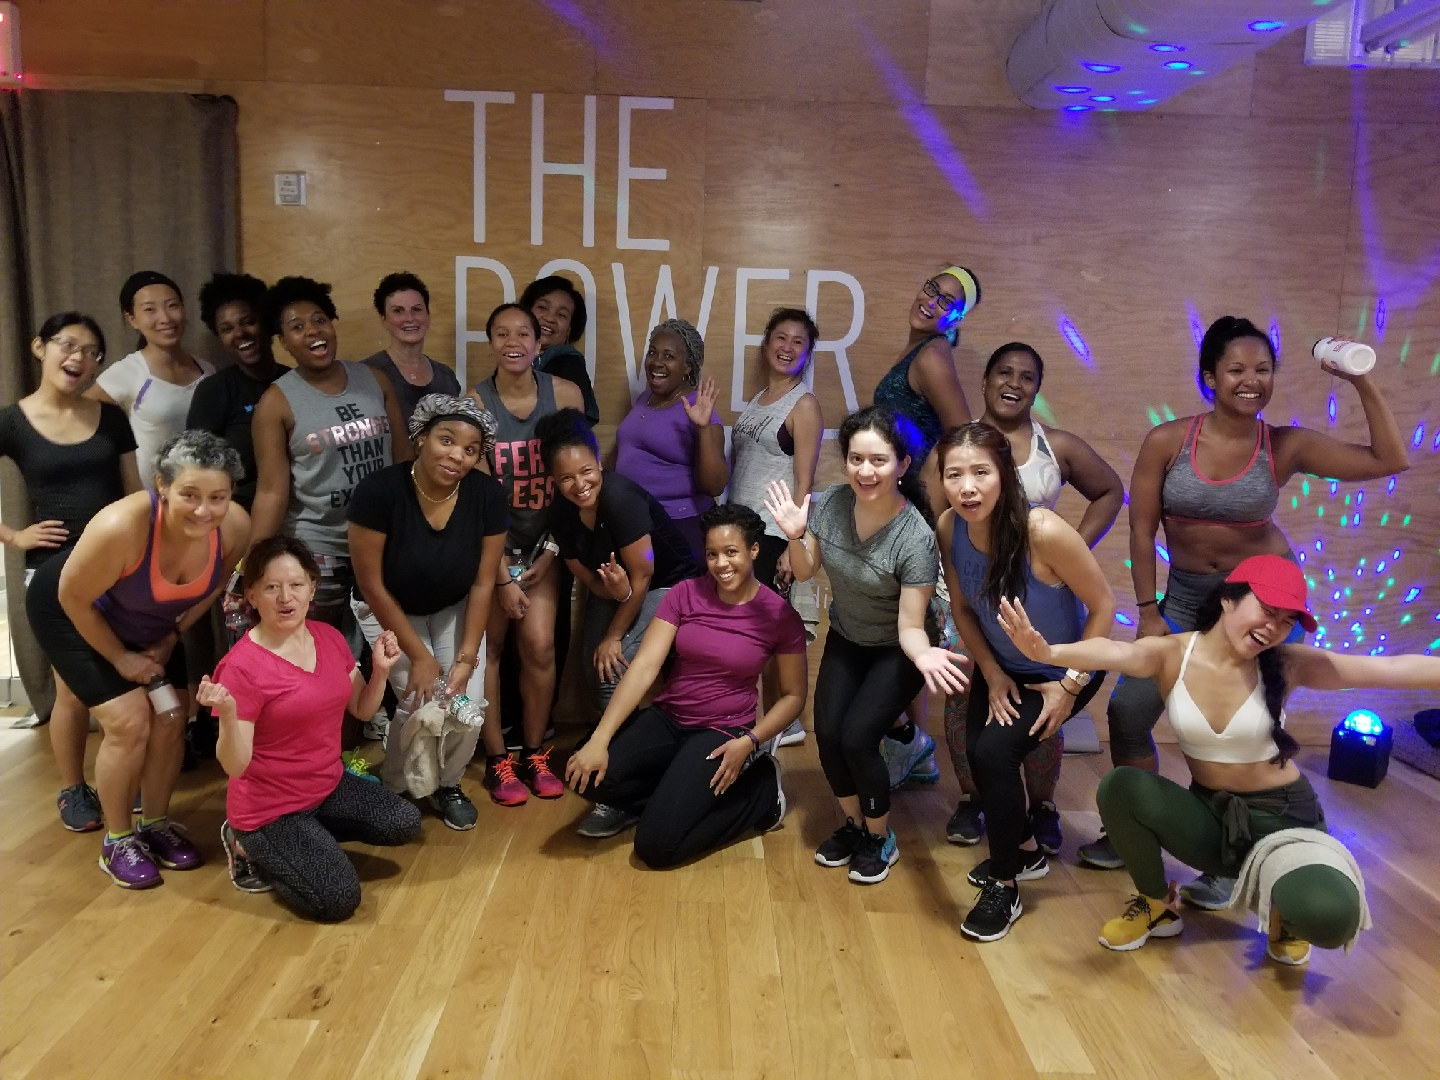 Thank you to everyone who continues to wuk up a sweat with us on Fridays. See you this month!